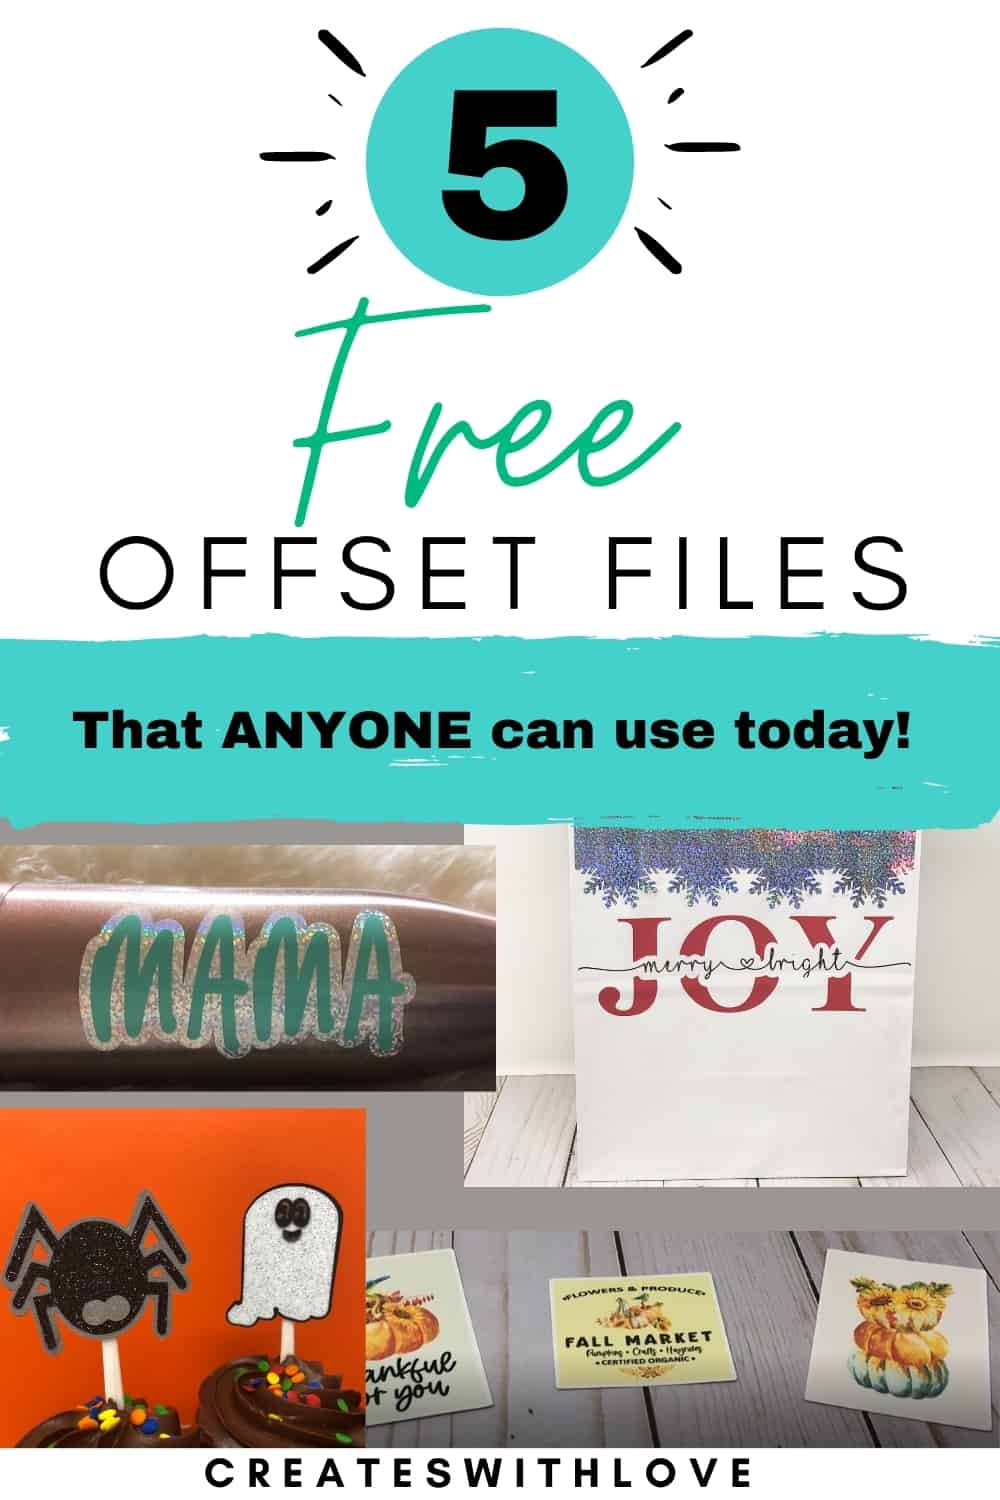 5 free offset files that anyone can use today